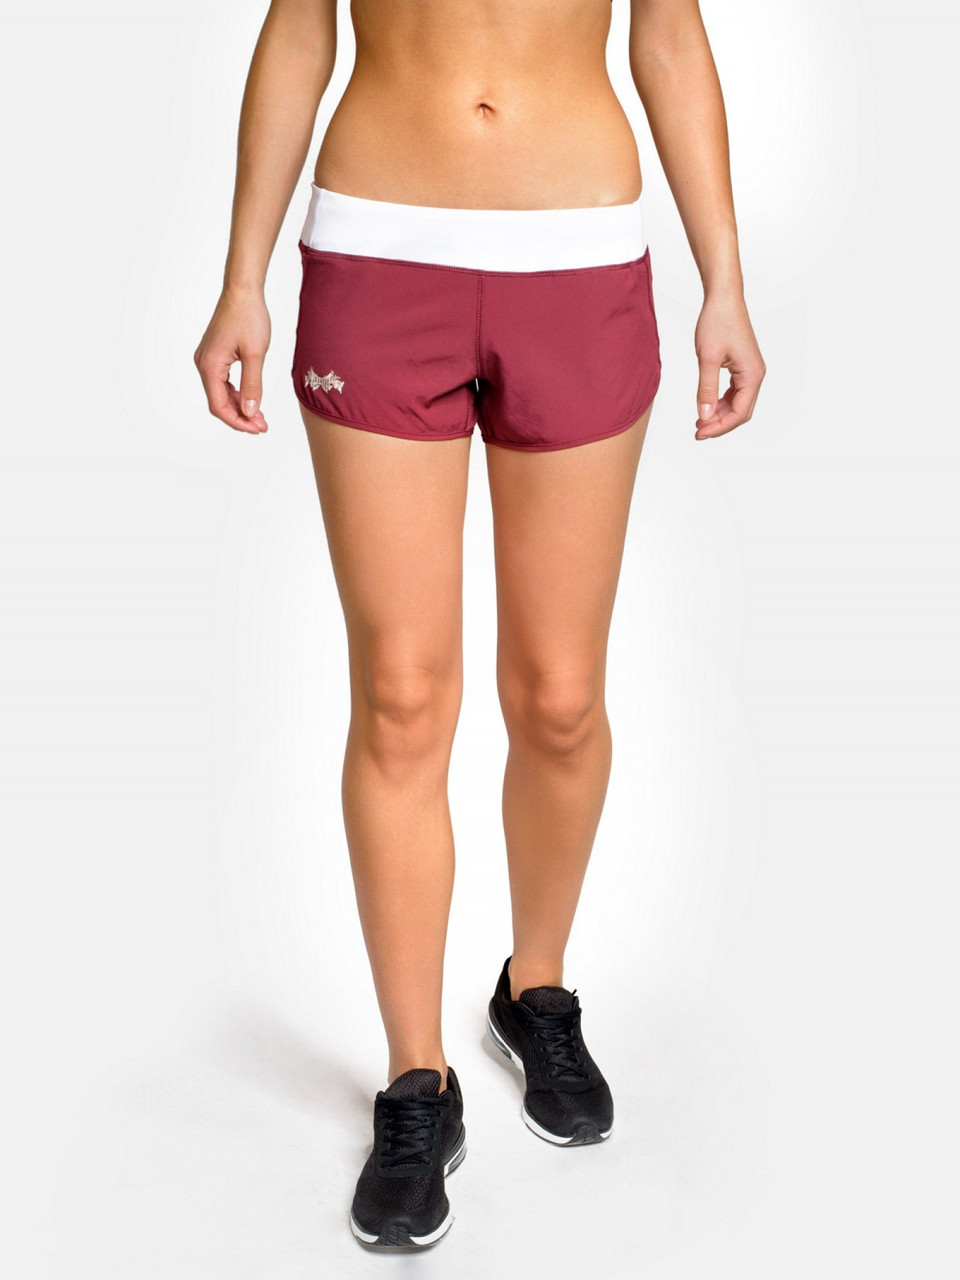 Спортивные шорты Peresvit Air Motion Women's Shorts Bordo